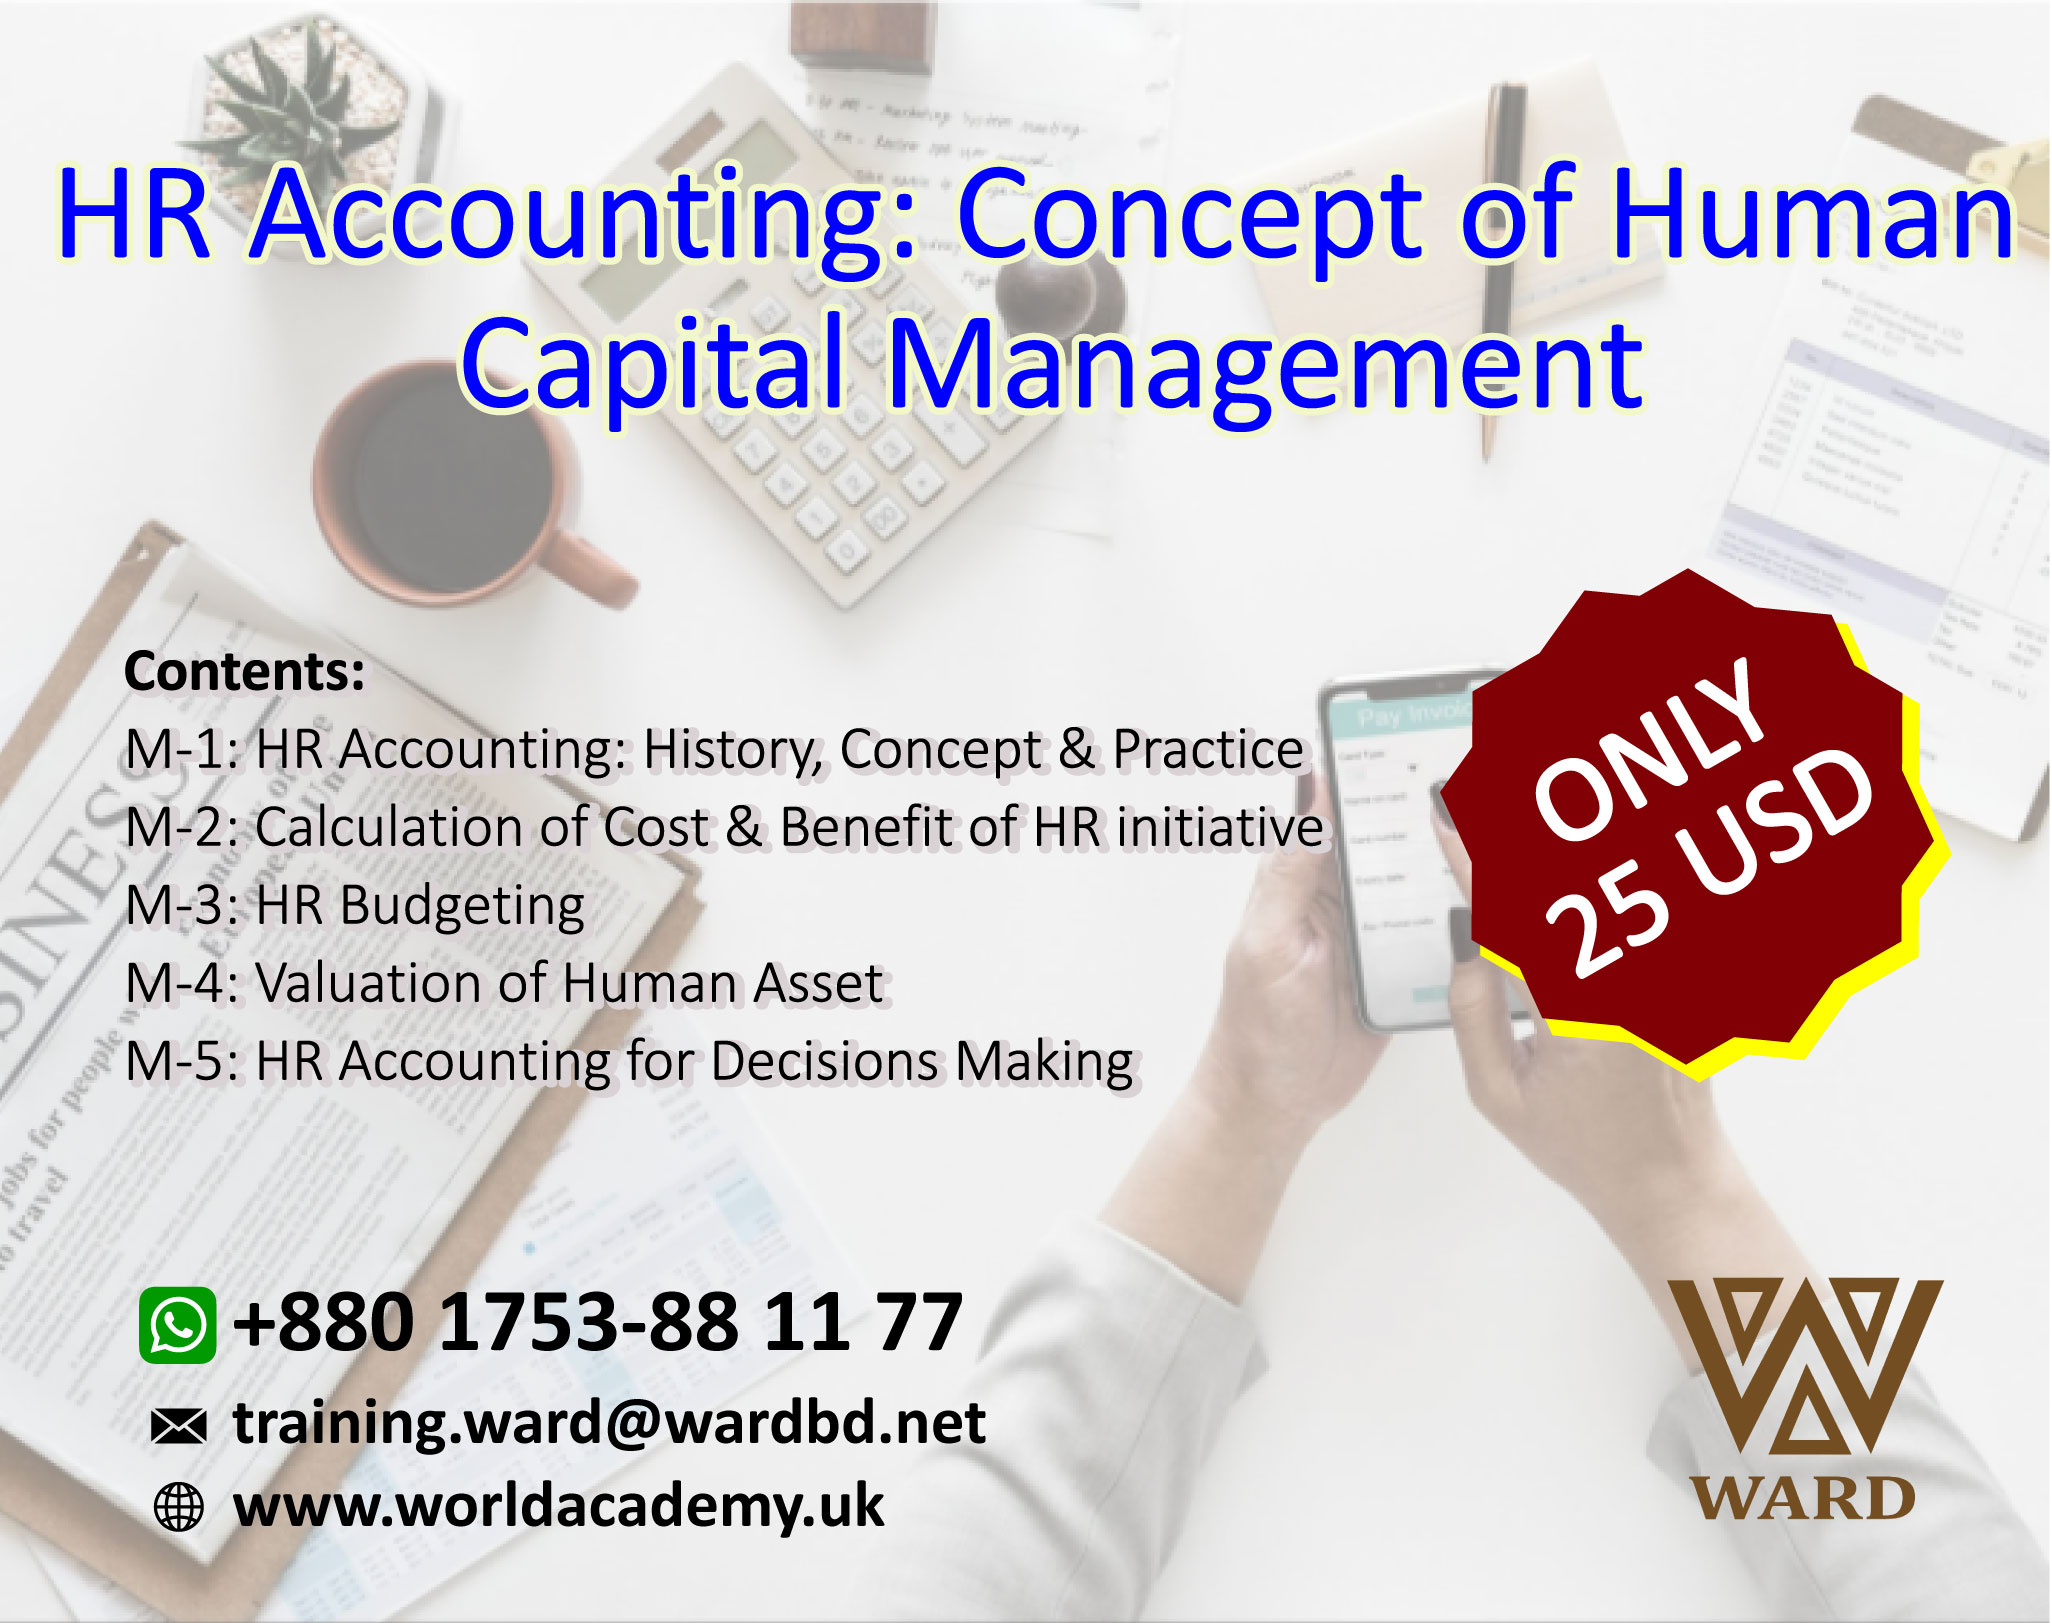 HR Accounting: Concept of Human Capital Management - Online